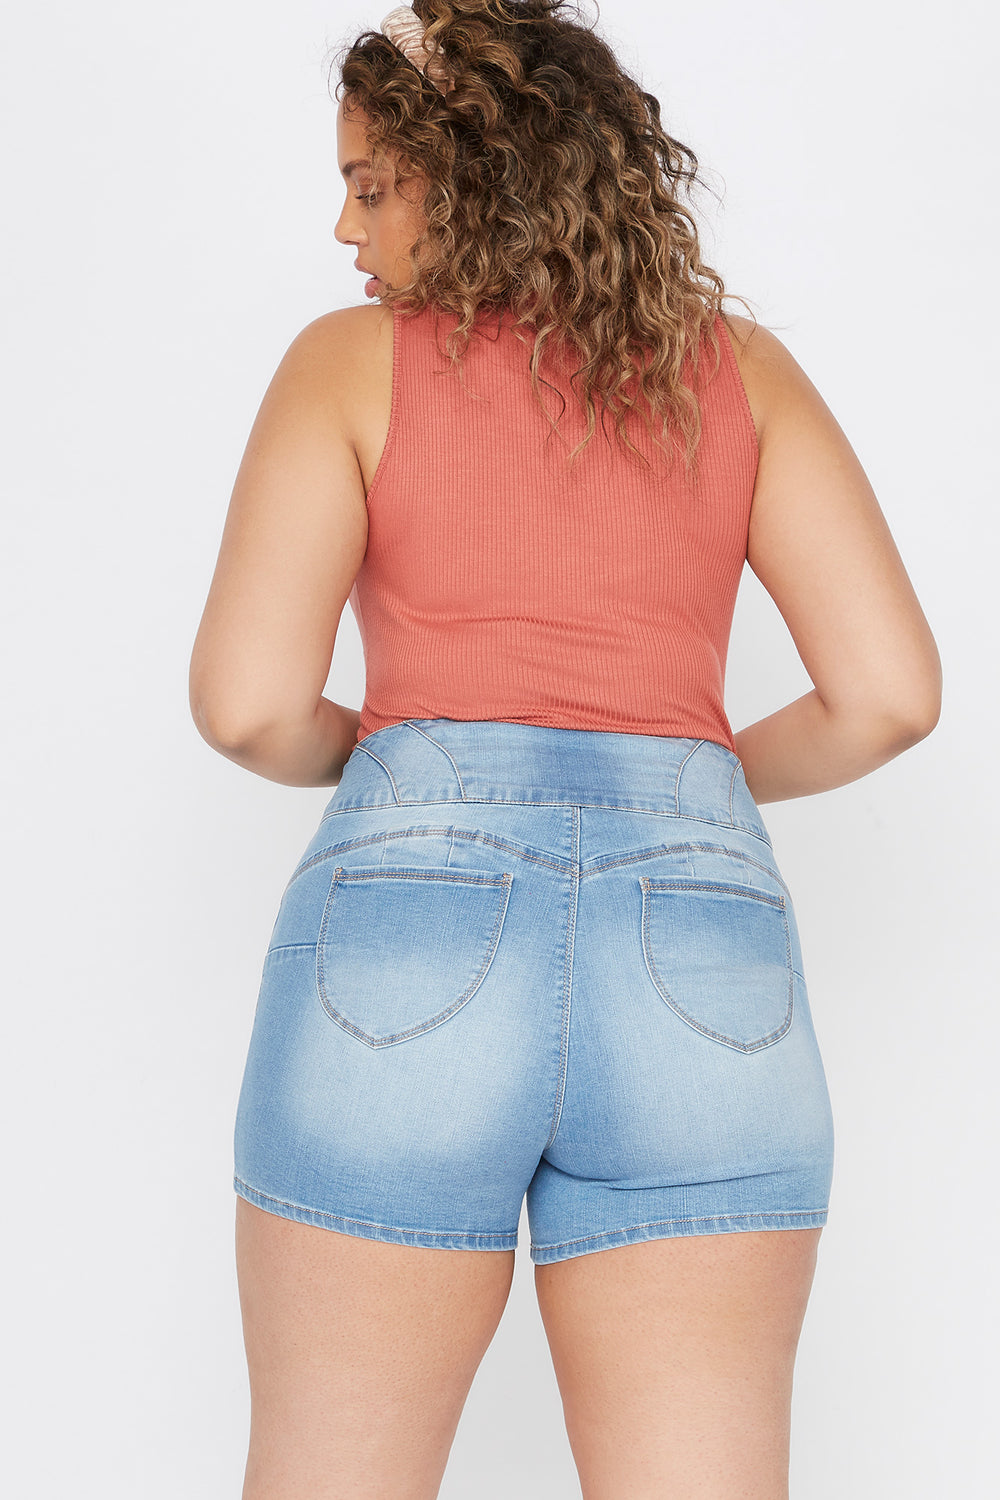 Plus Size Butt, I Love You 3-Tier High-Rise Push-Up Denim Short Sky Blue